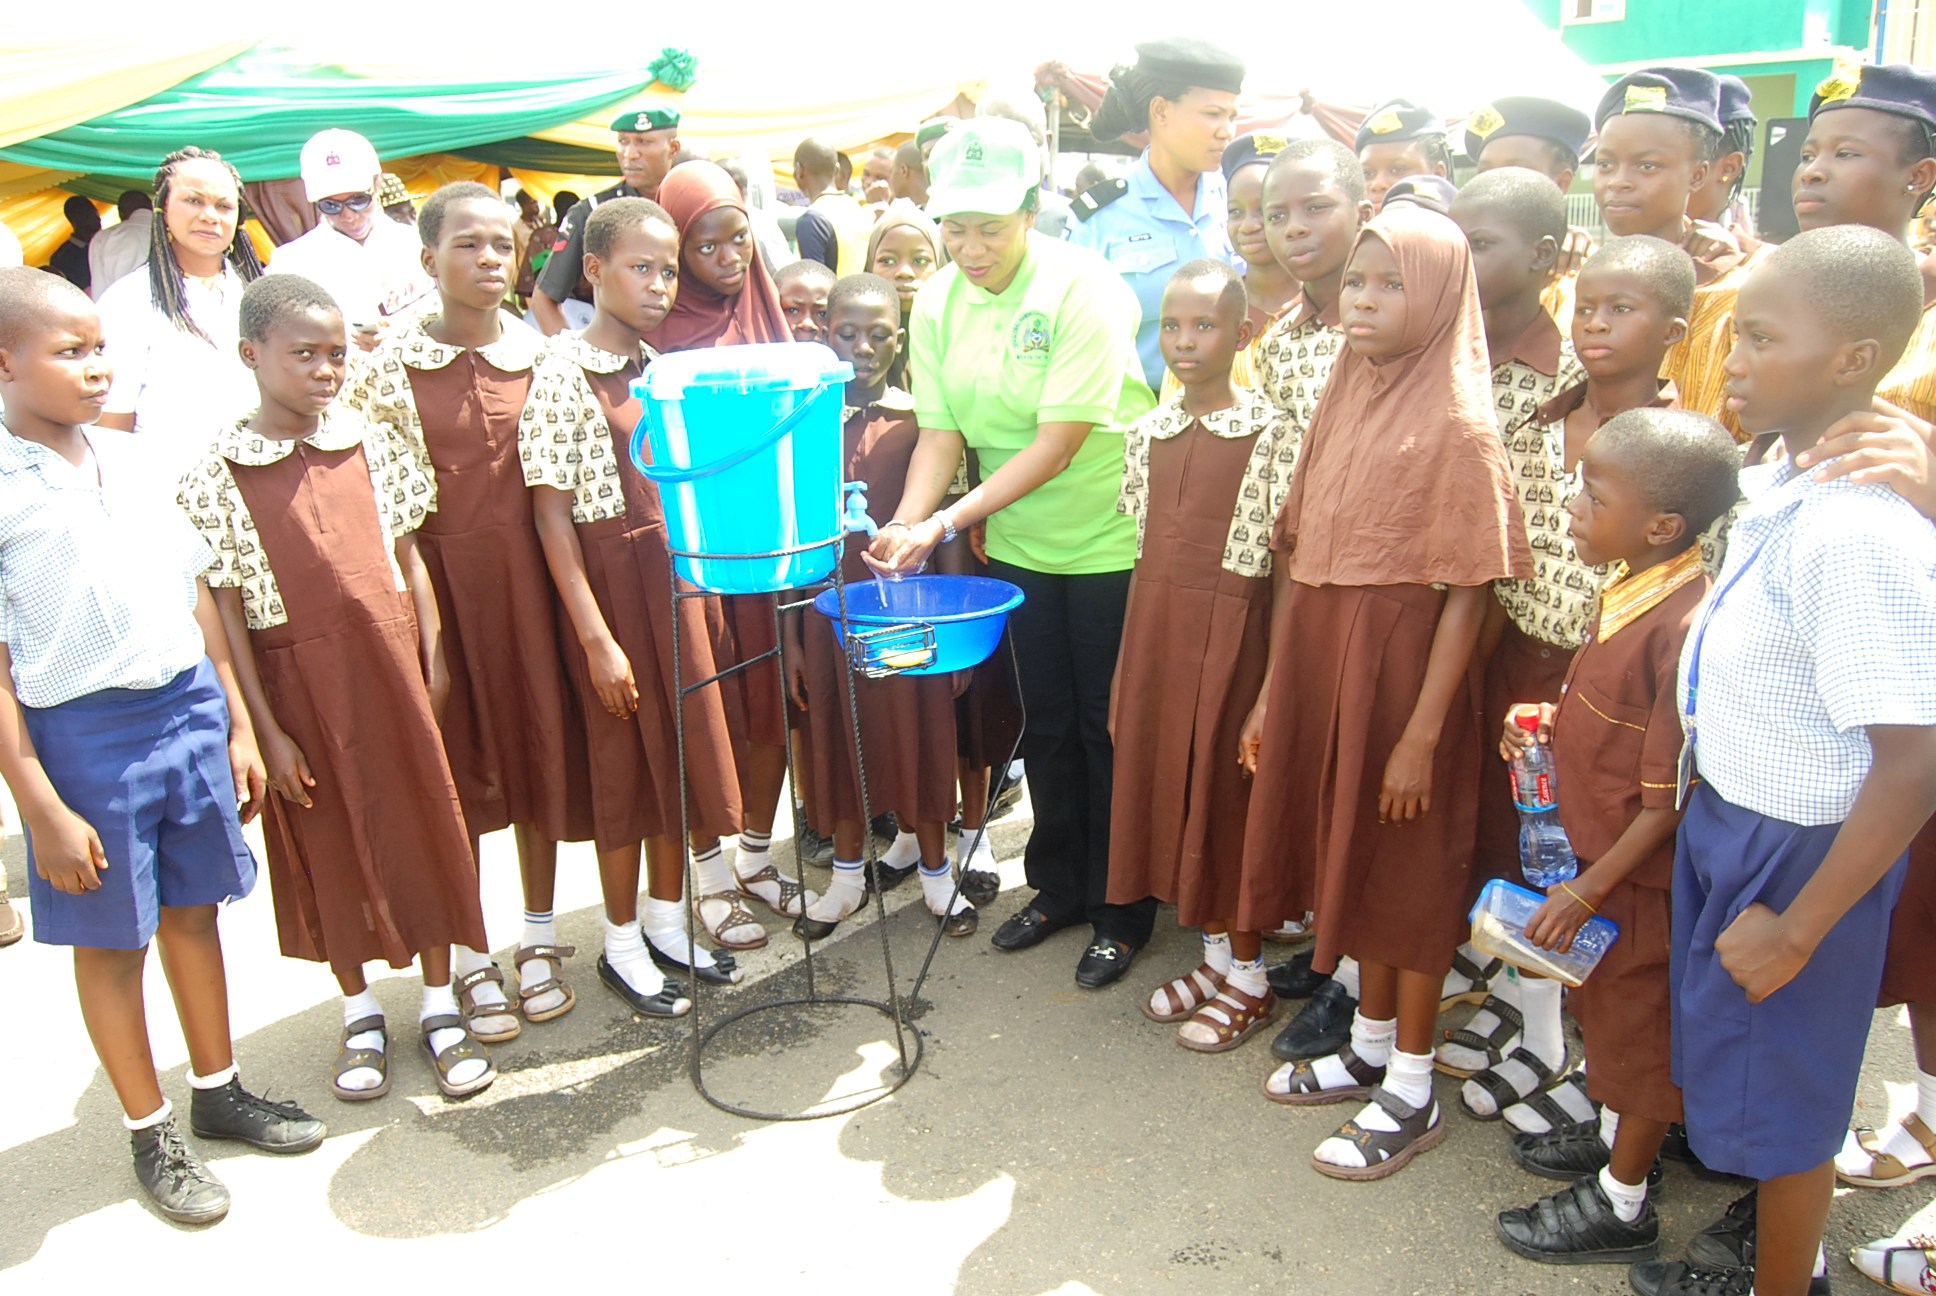 UNICEF Ambassador on Community Led Total Sanitation (CLTS), Mrs Sherifat Aregbesola in a group photograph with students while demonstrating hand washing, during the recent 2014 Global hand washing Day celebration in Osogbo, the Sate of Osun.